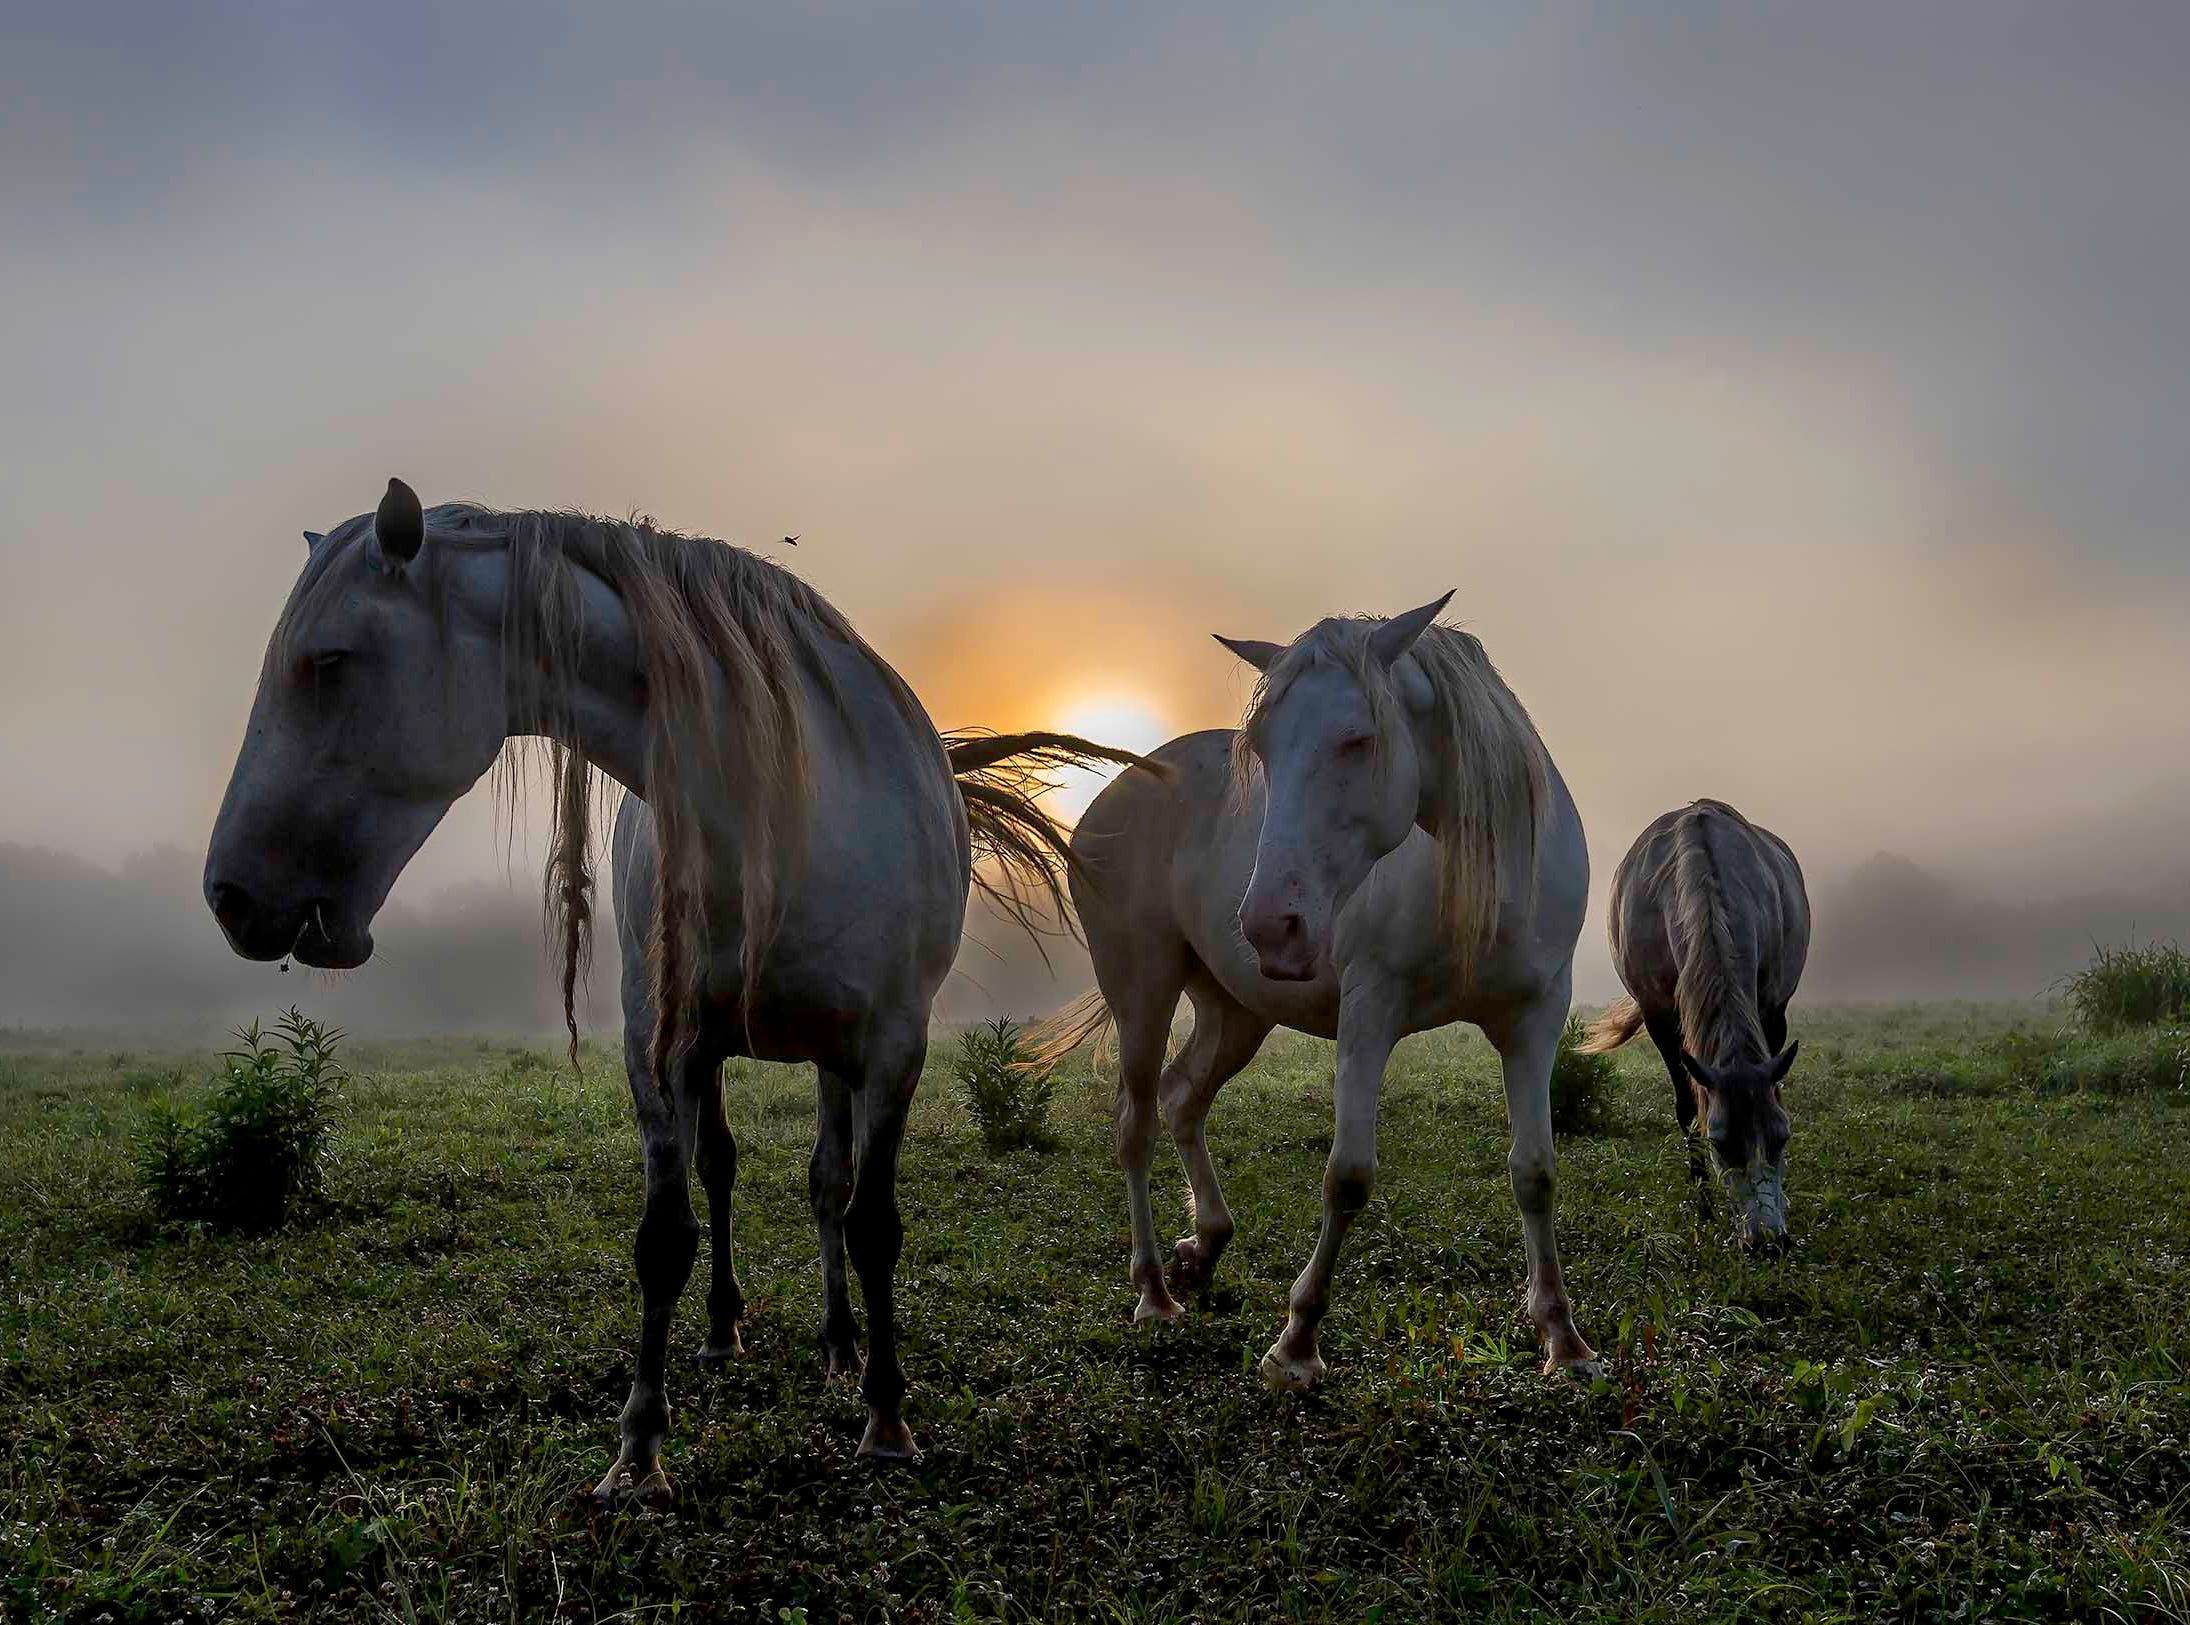 Horses in the Shawnee Creek herd graze as the sun rises.